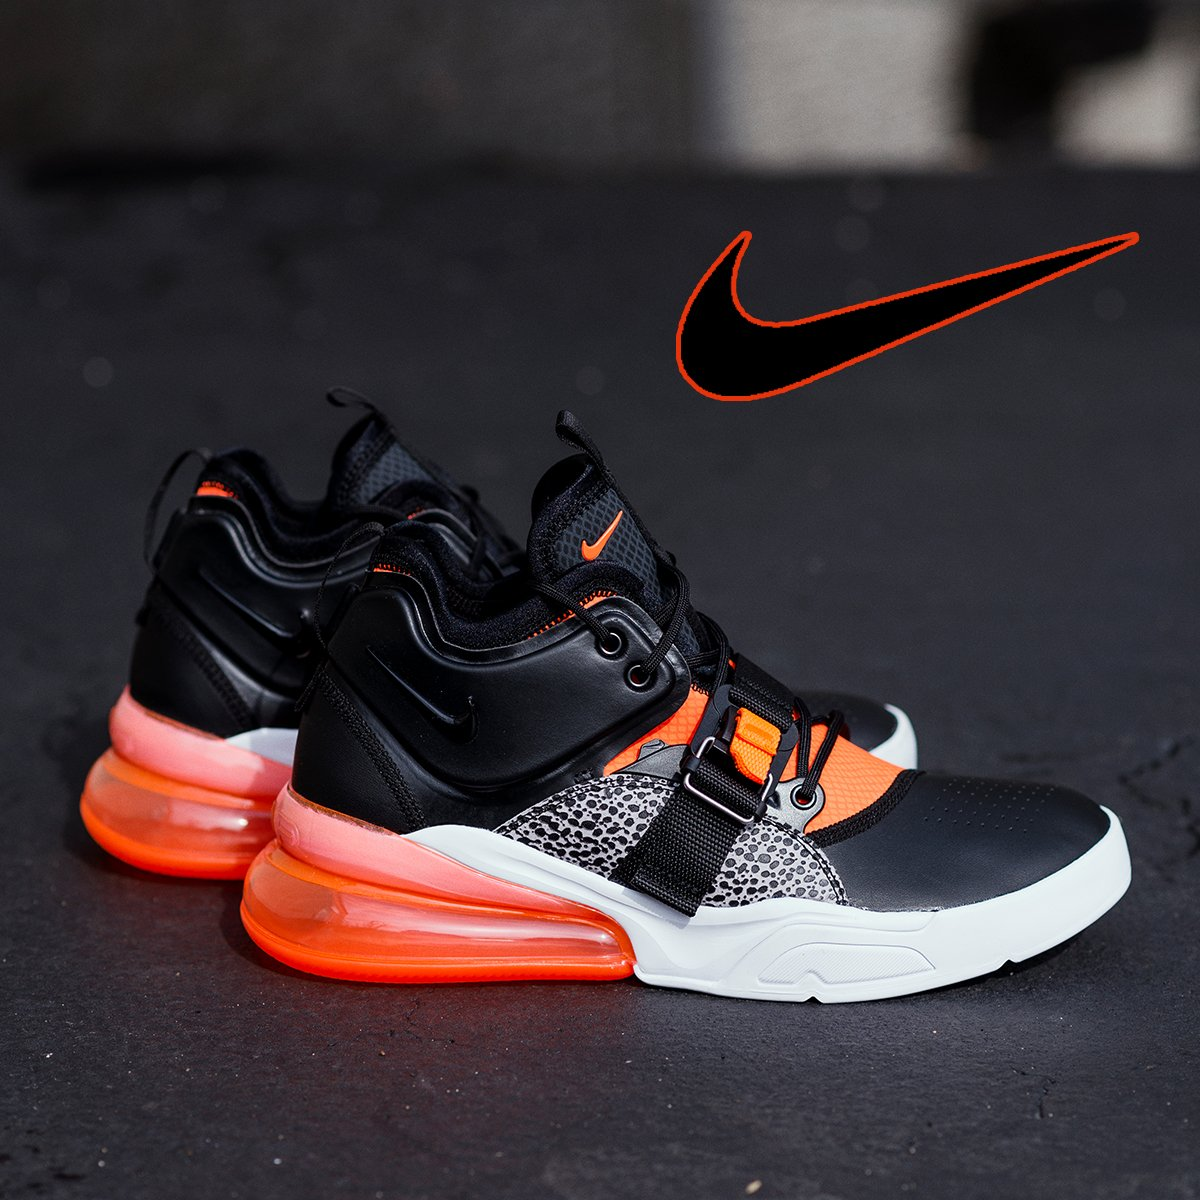 FirstLook at the Nike Air Force 270